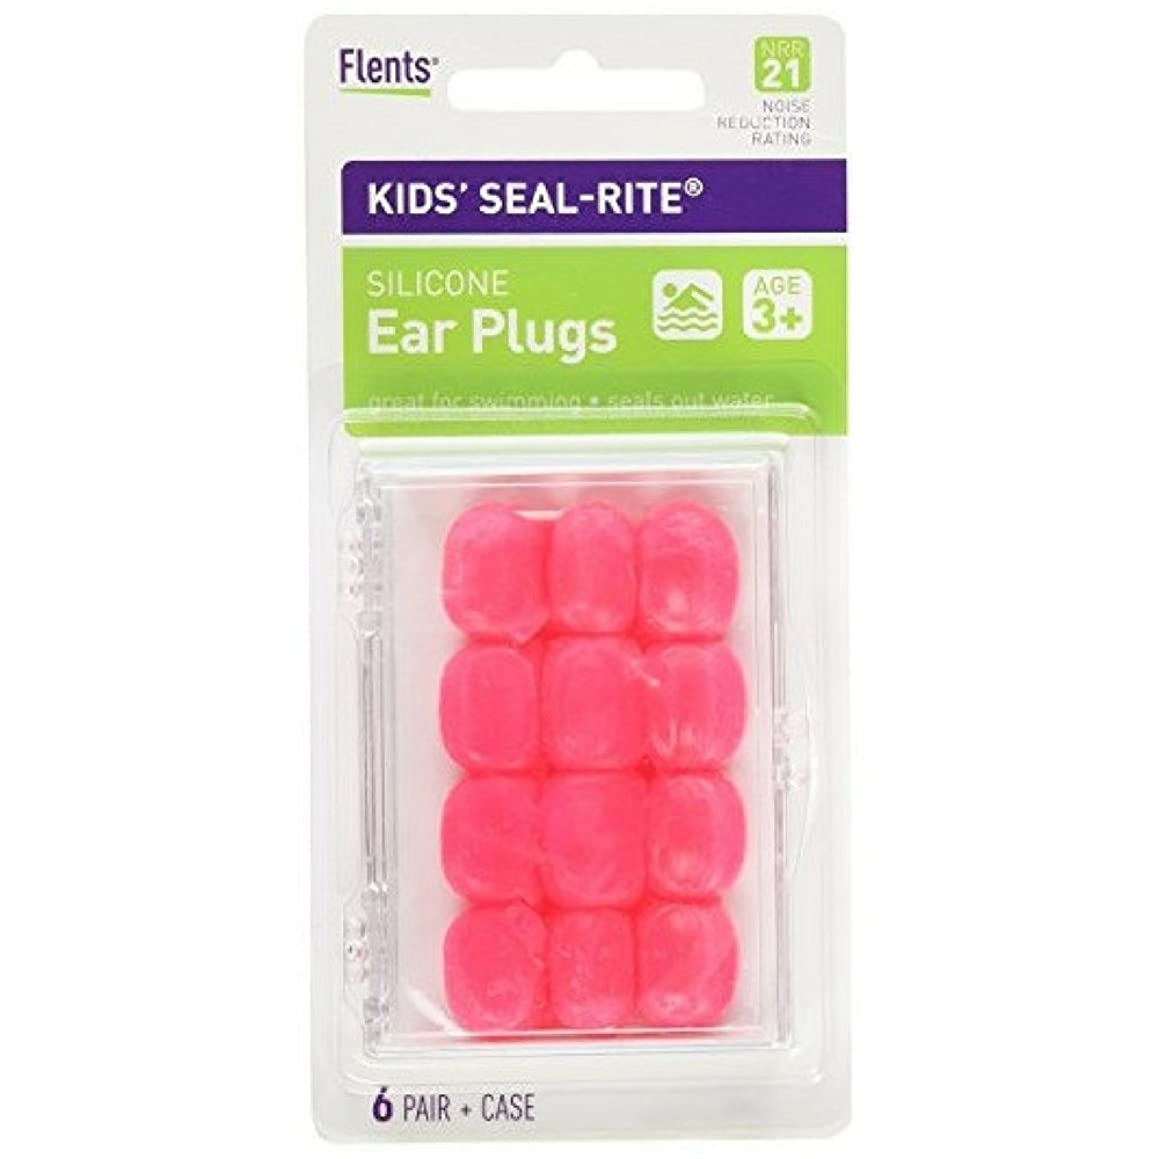 Flents Kid's Silicone Ear Plugs C265 6 Pairs (Color May Vary) (Pack of 6)